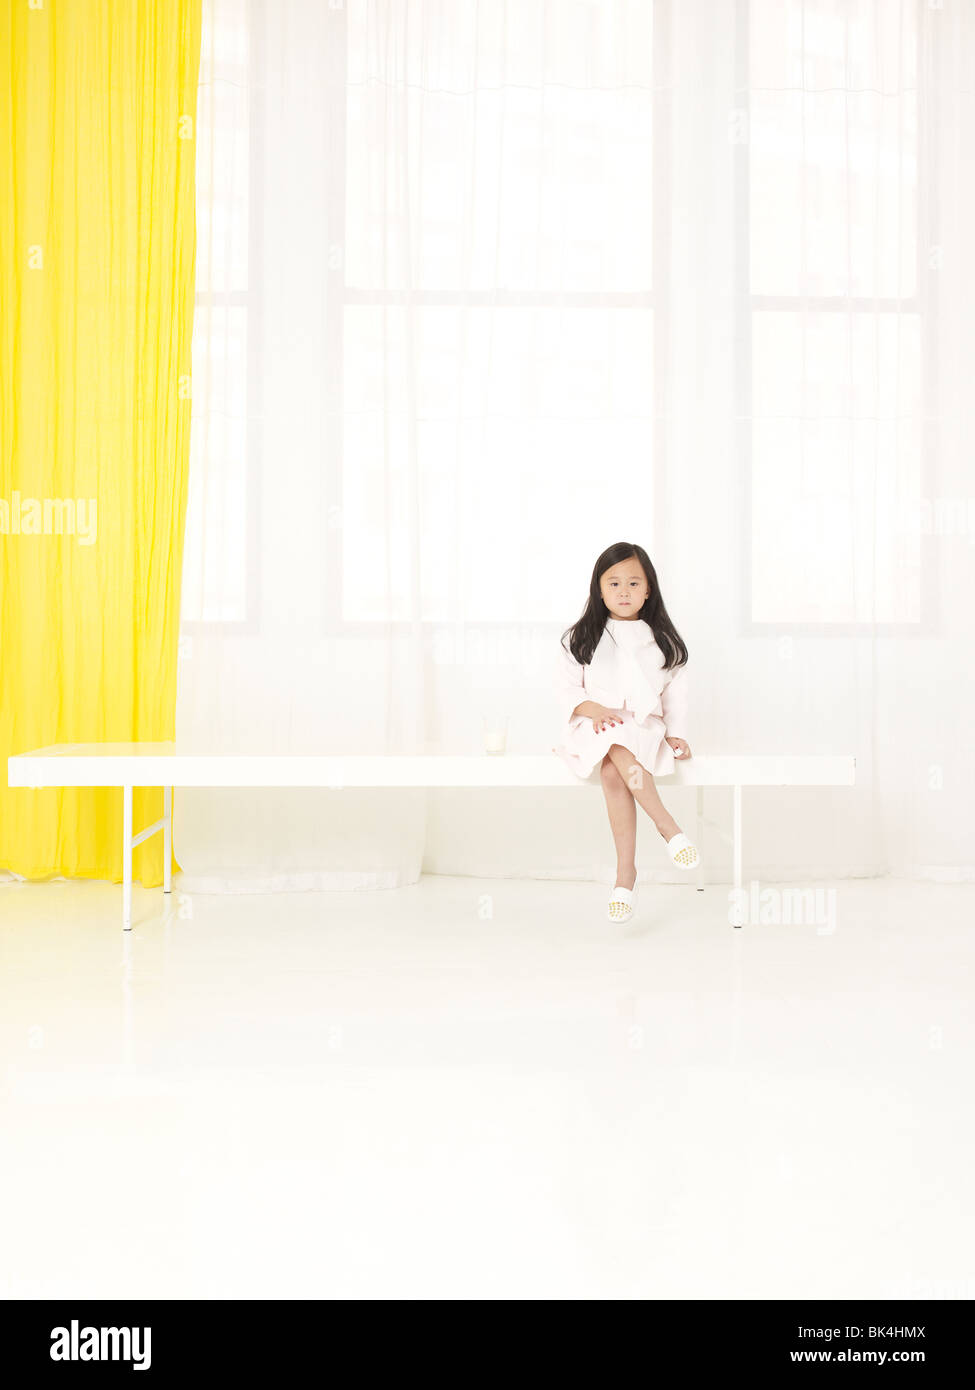 Girl in white sitting in white room Stock Photo